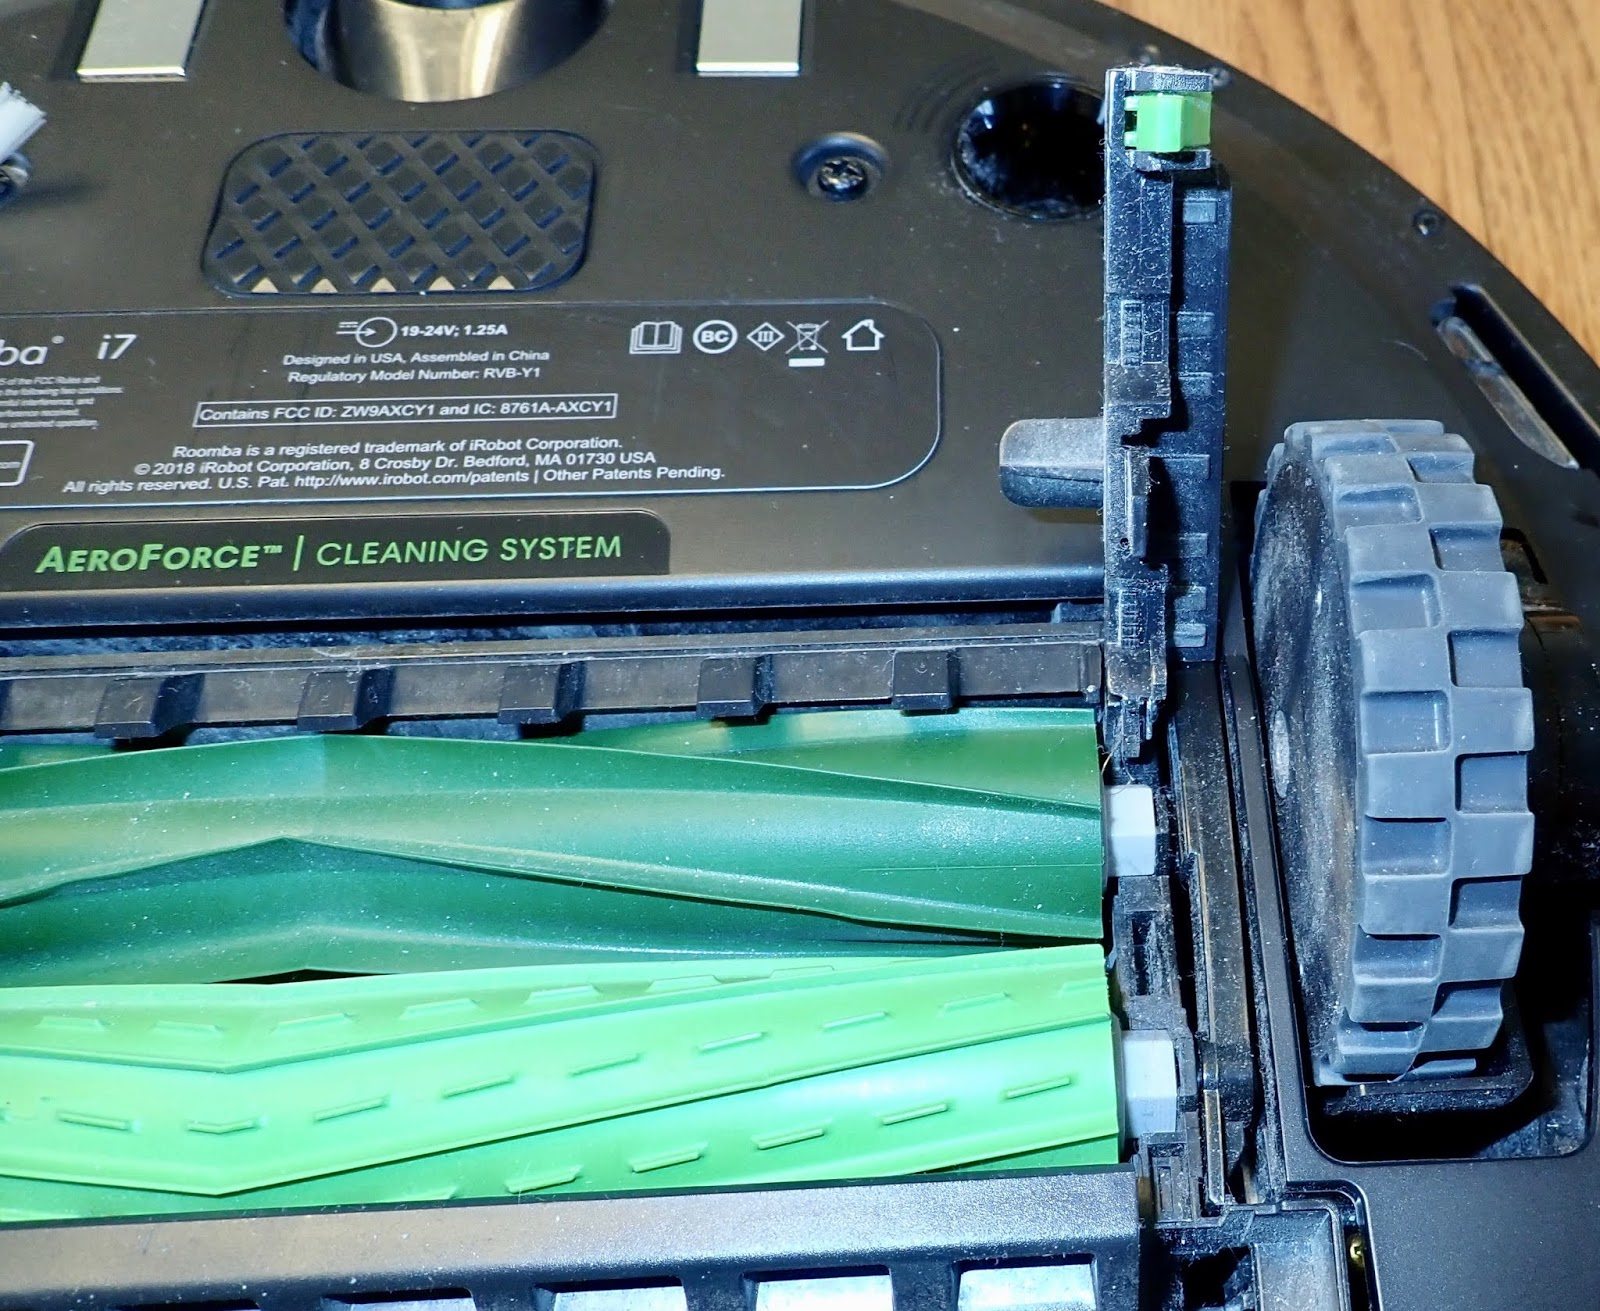 Syonyk's Project Blog: Roomba i7 Teardown: Why is there a